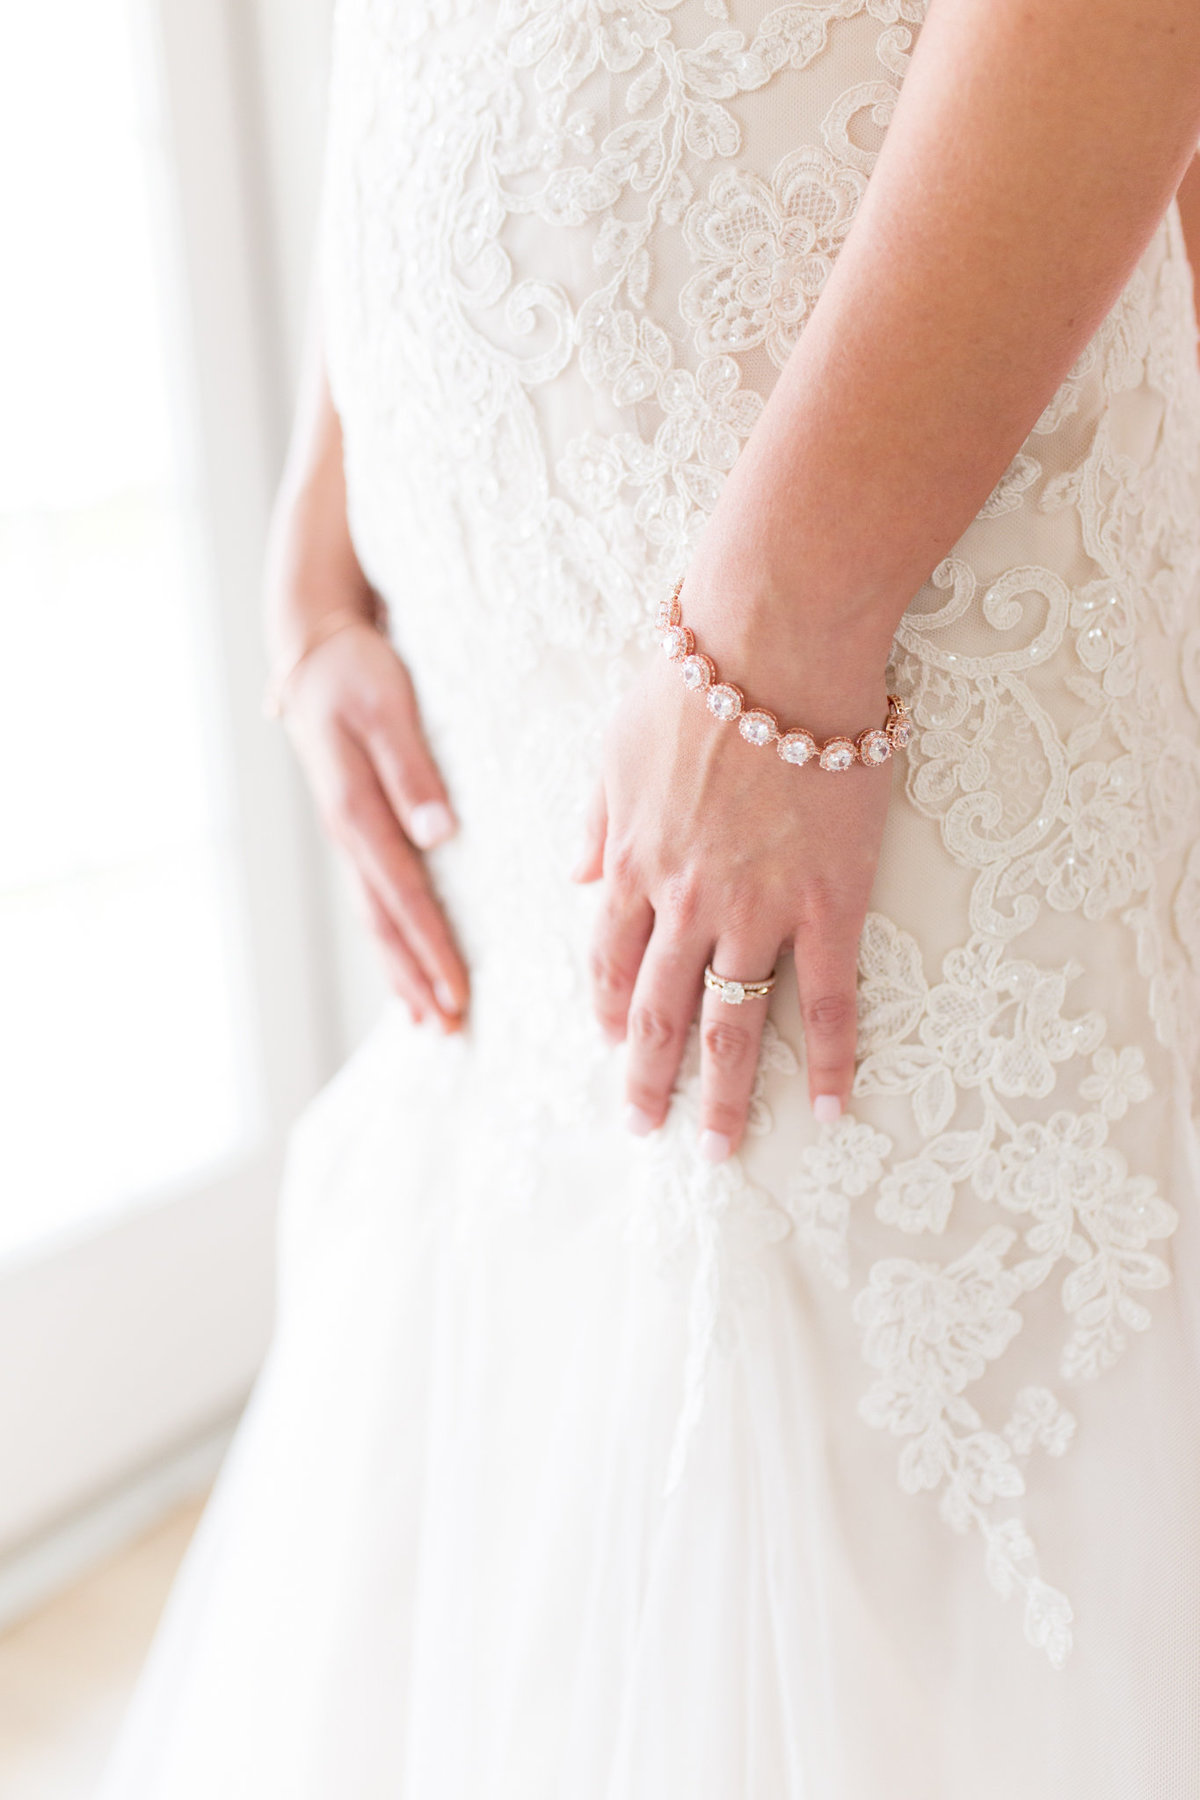 Grand Ivory Wedding| Dallas, Texas | DFW Wedding Photographer | Sami Kathryn Photography-18